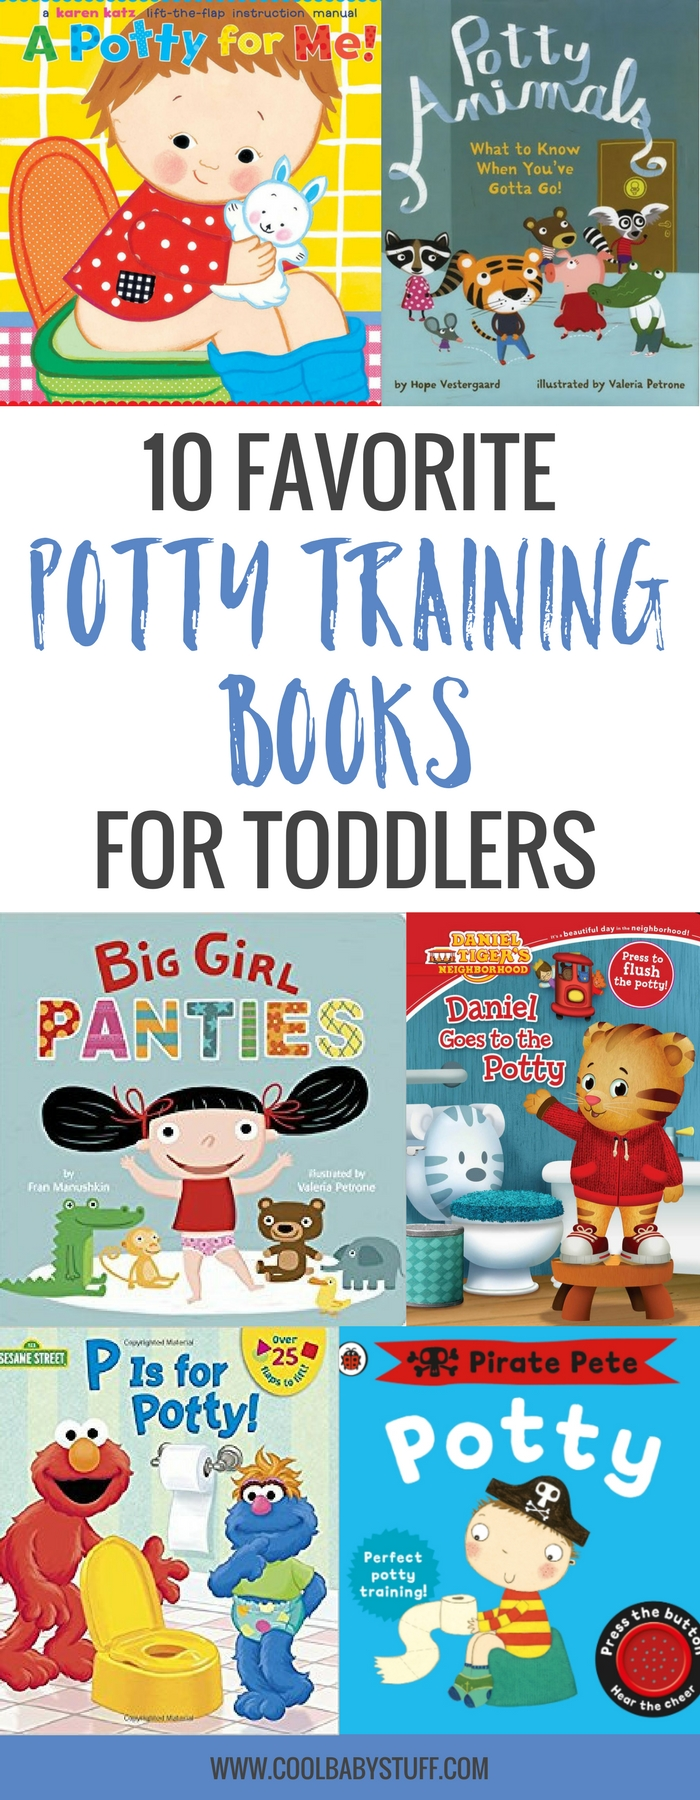 Here are our favorite potty training books to bring you smiles and encouragement even as you clean the sheets for the third time in the week or step in warm poo on the floor. May your sense of humor be with you.